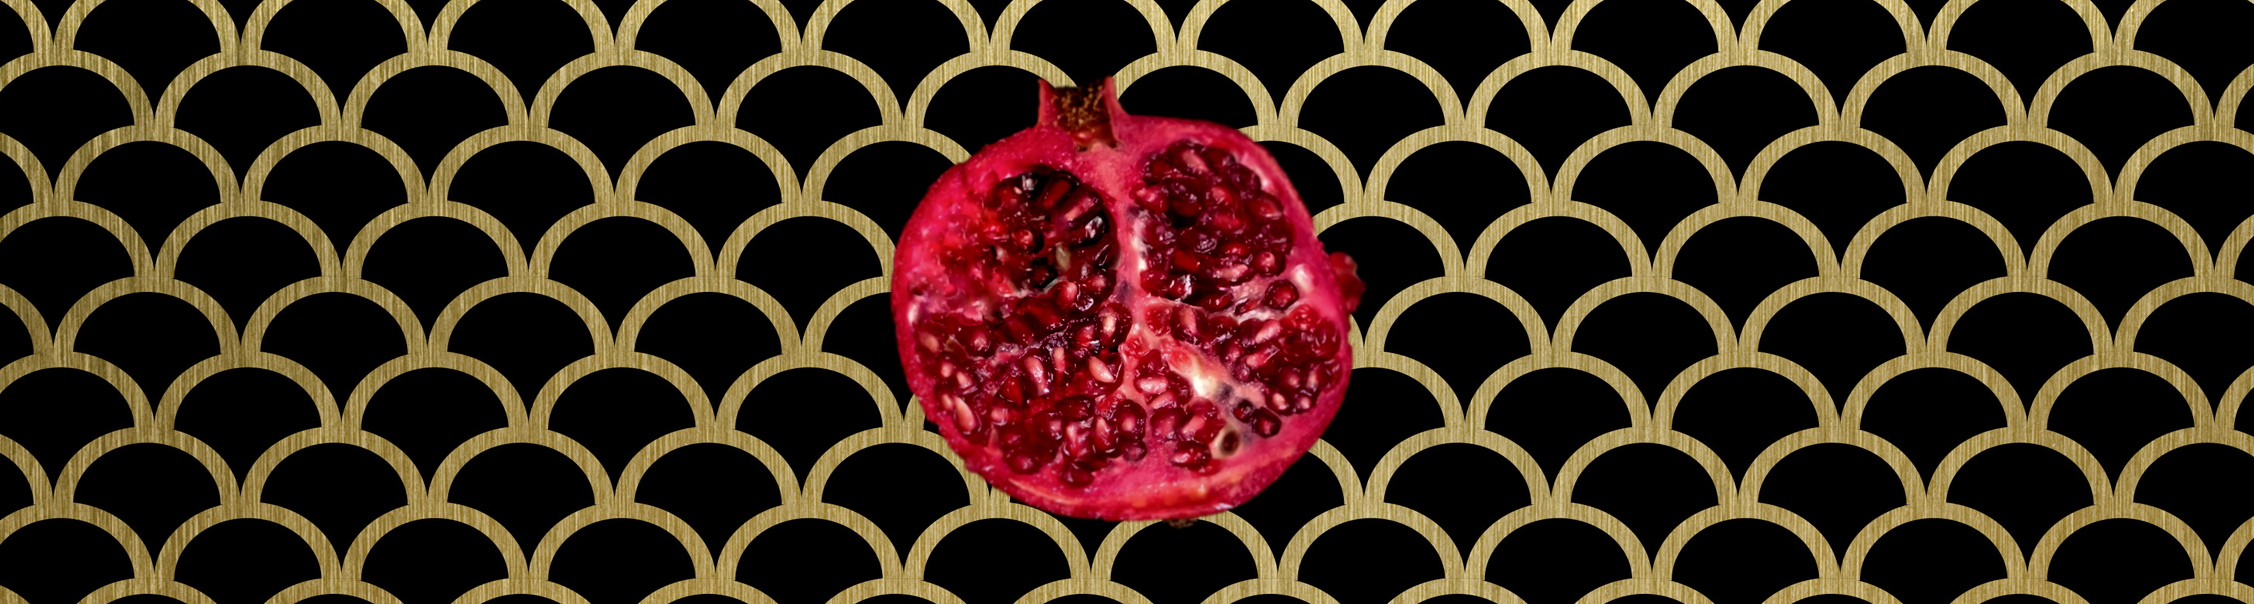 Taboo pomegranate spanner.png